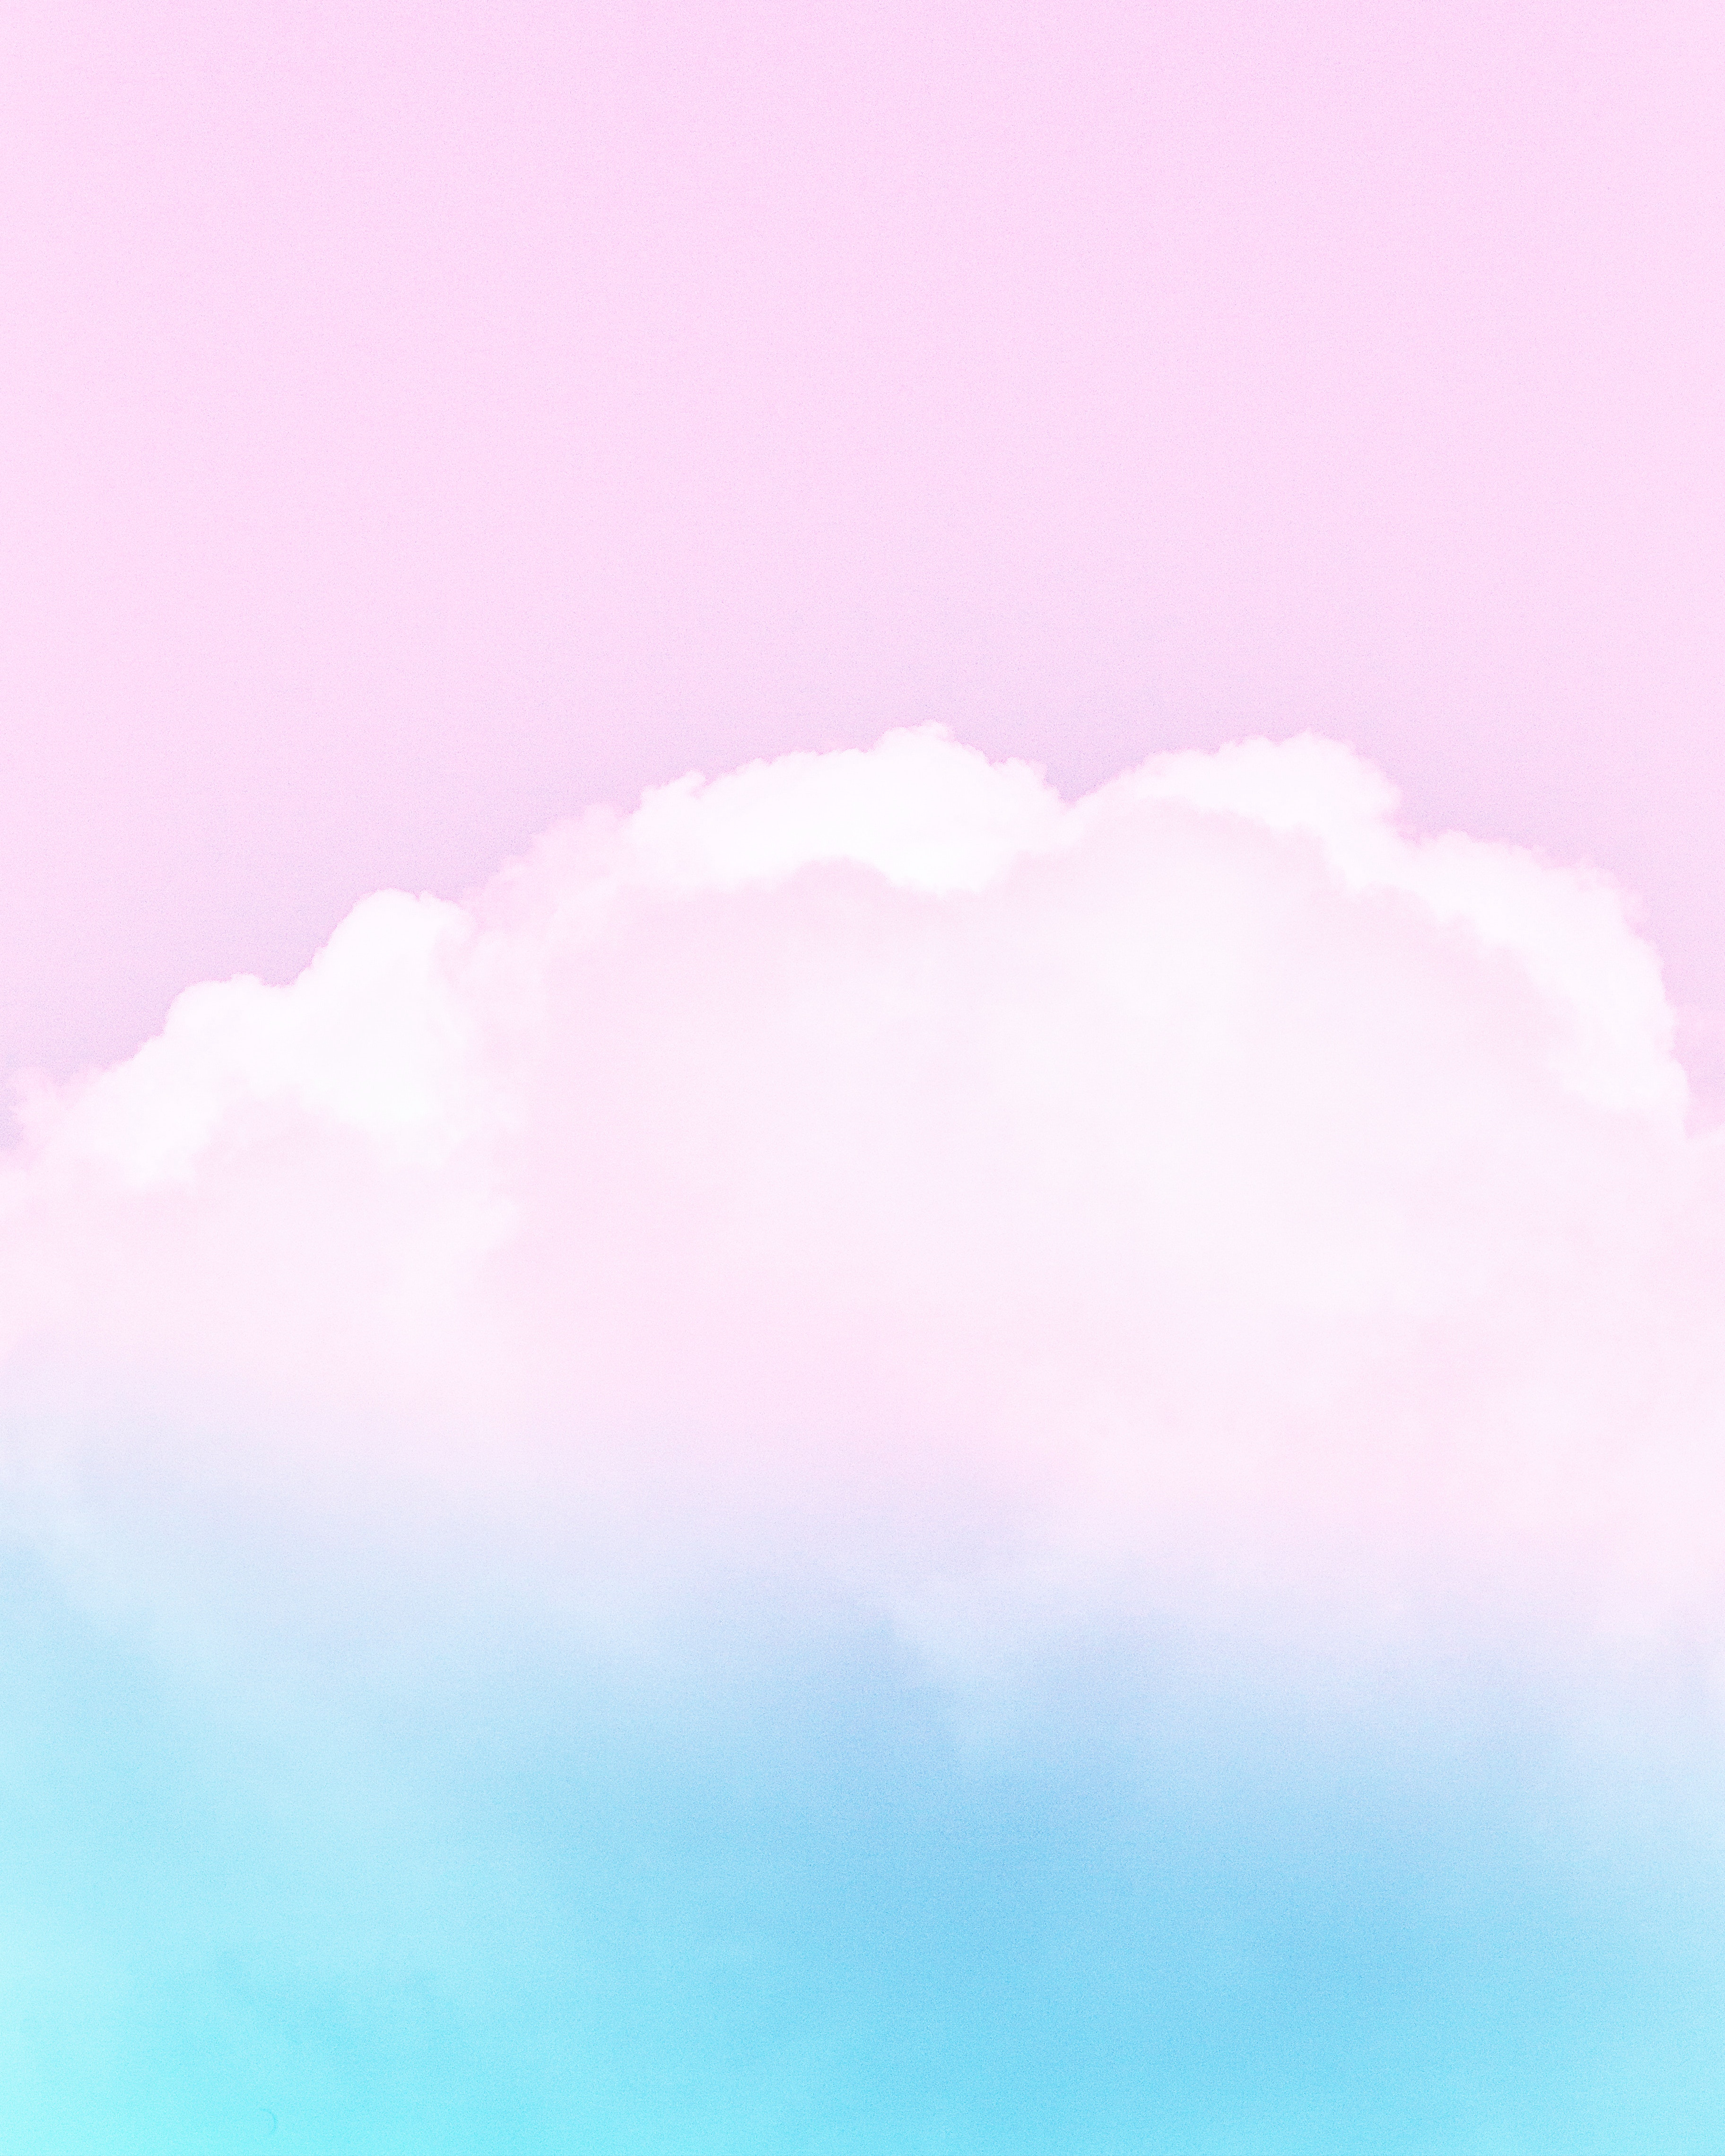 Photo of Clouds During Daytime · Free Stock Photo